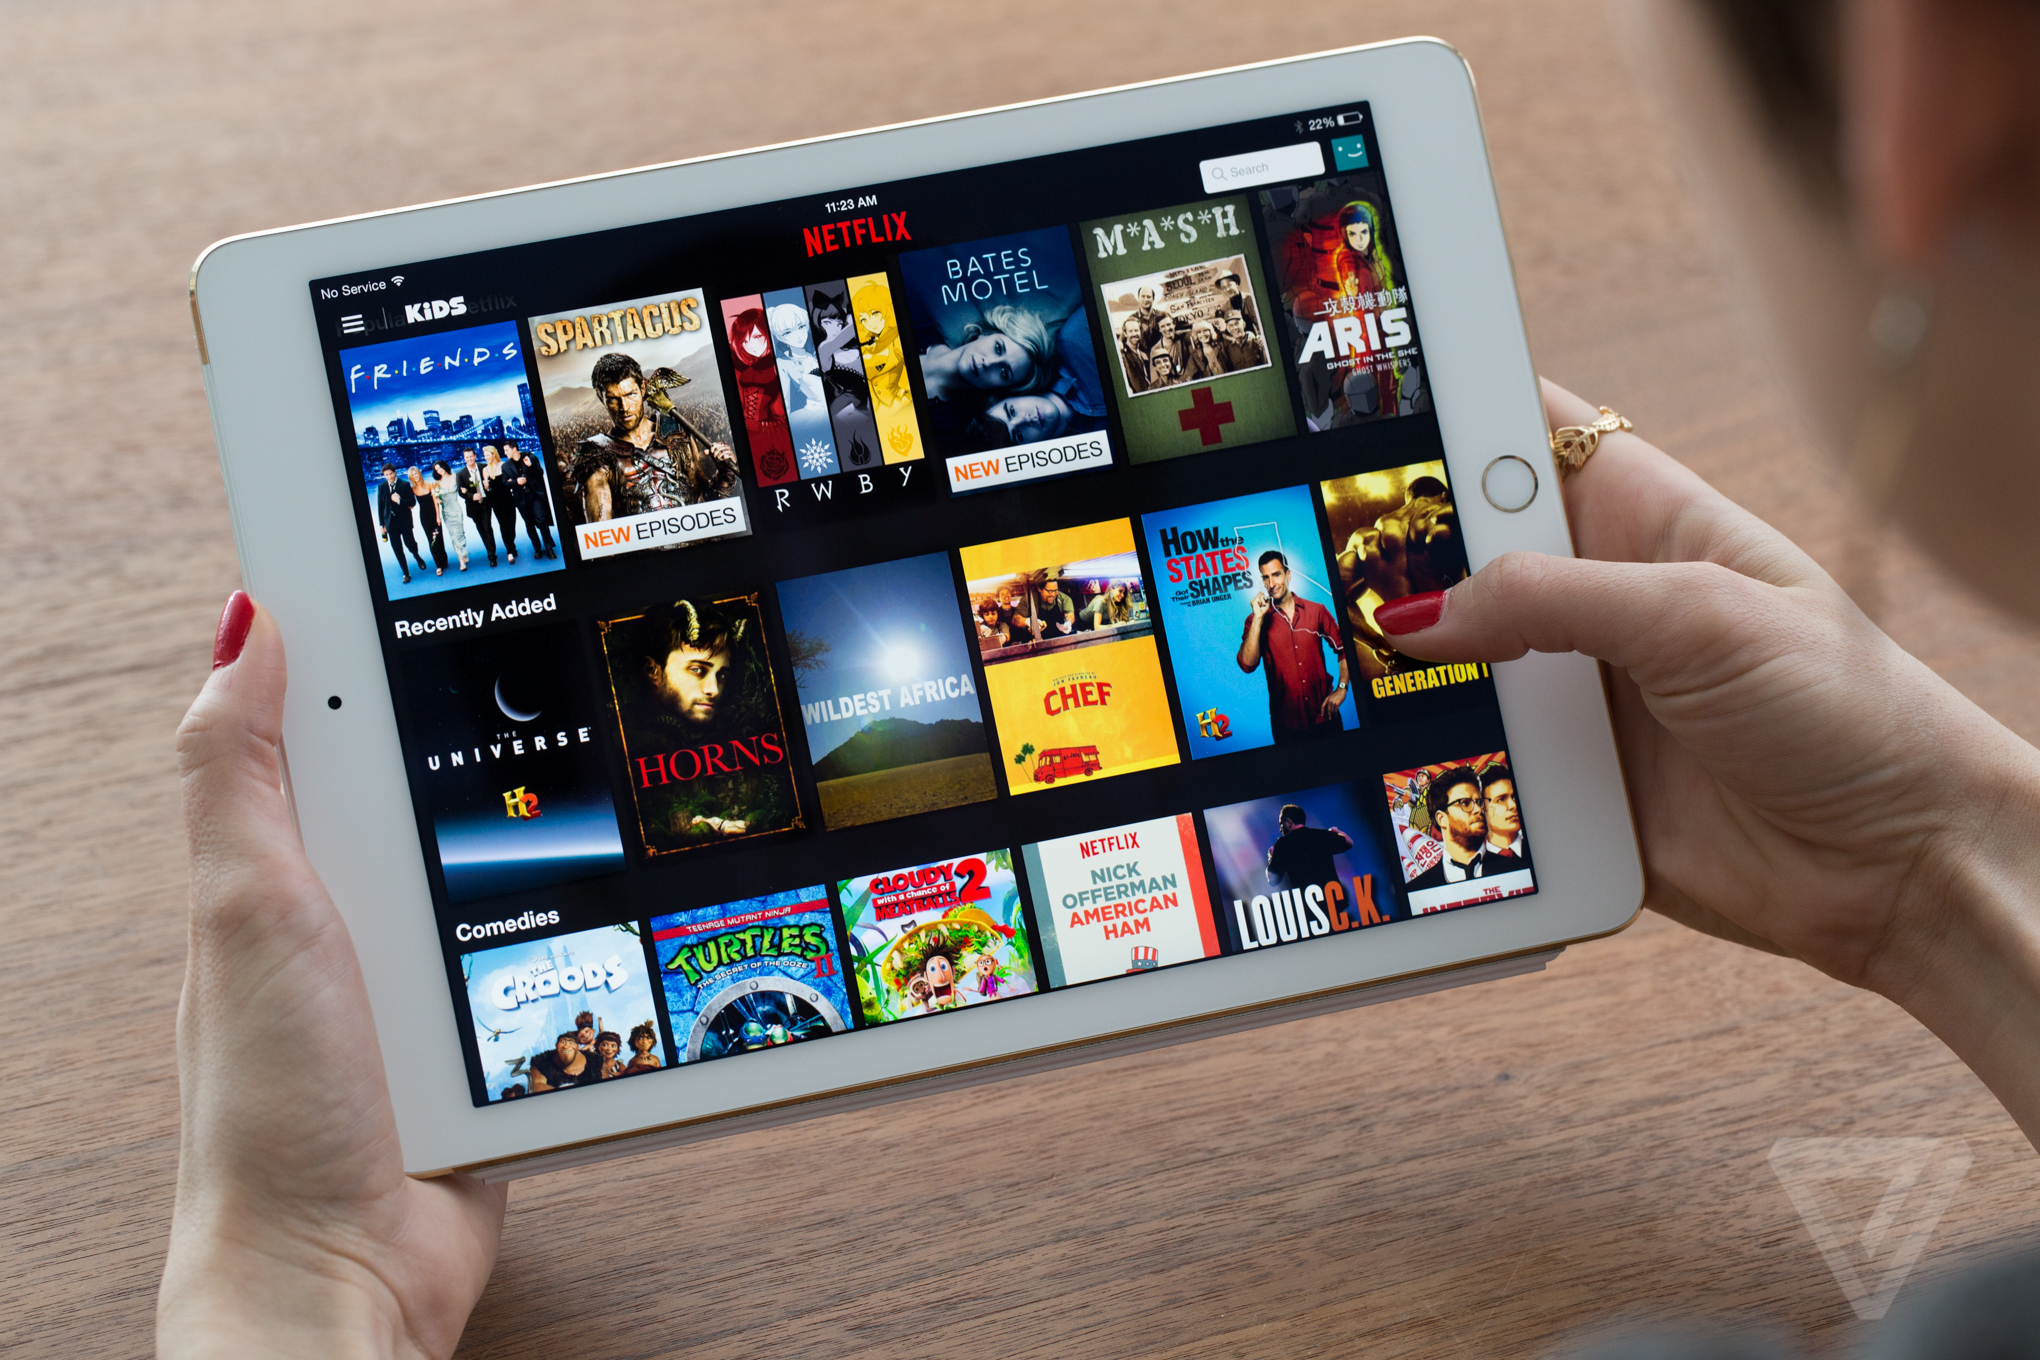 Netflix confirms it killed AirPlay support, won't let you beam shows